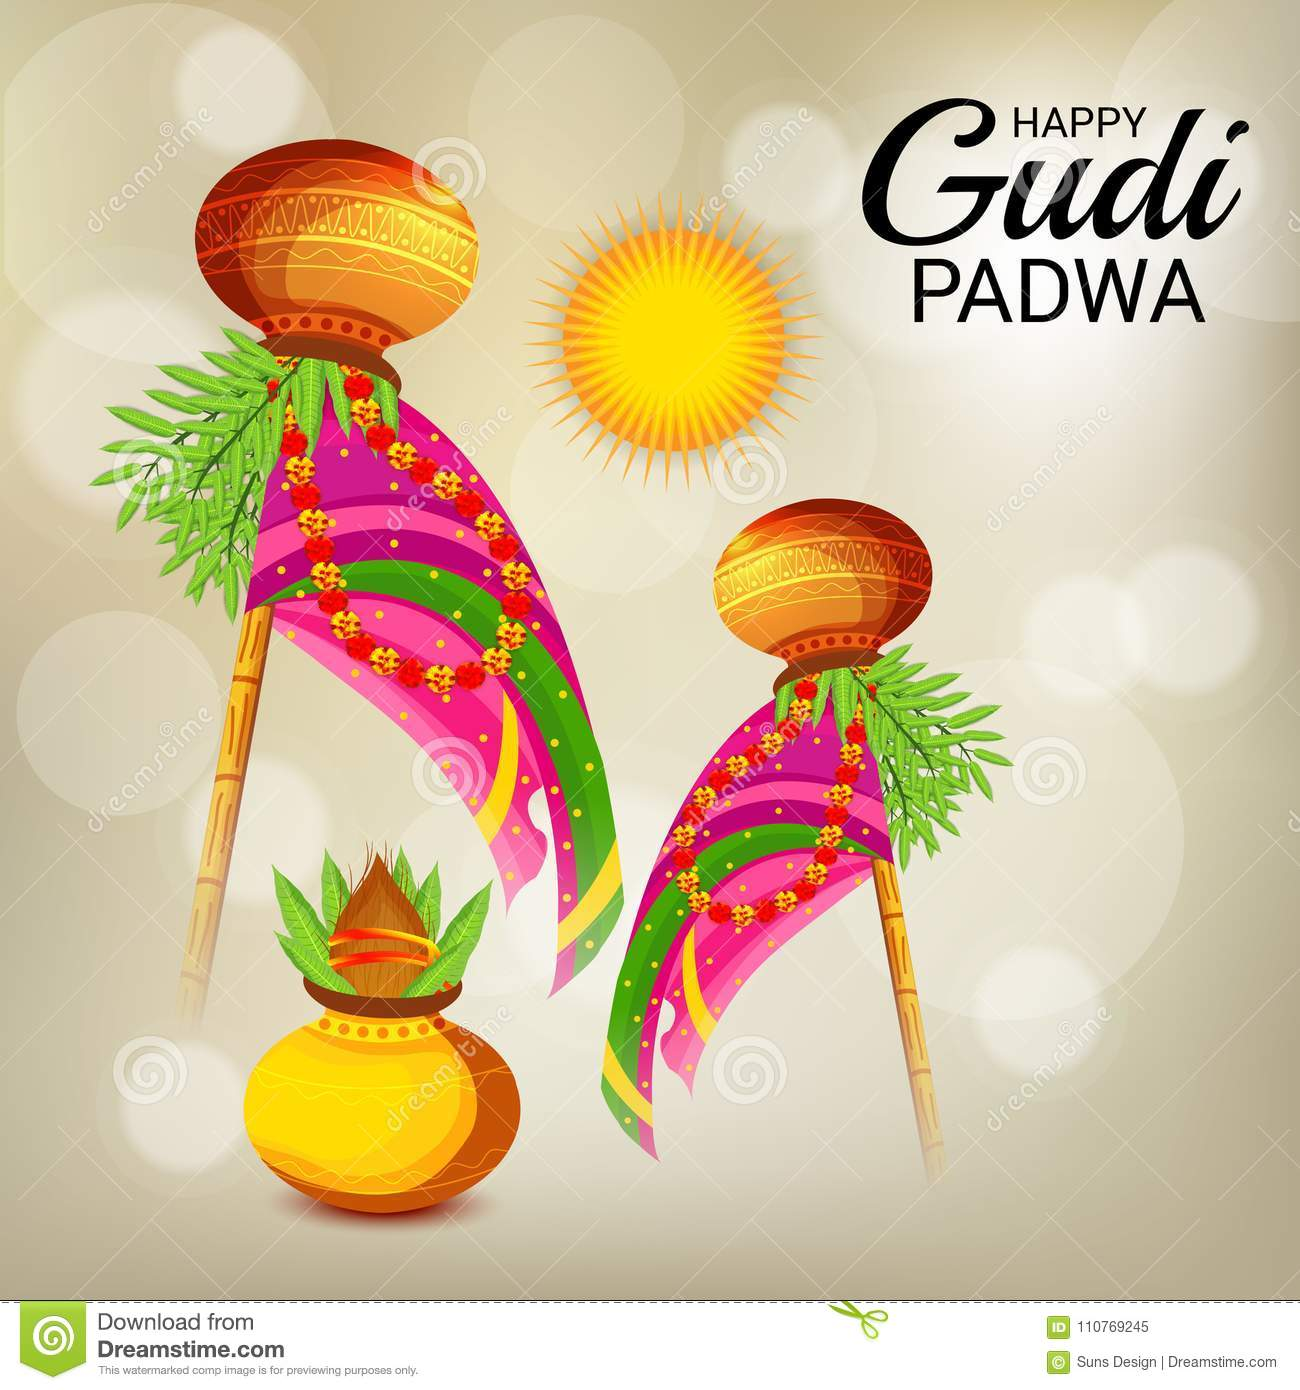 download happy gudi padwa marathi new year stock illustration illustration of greeting marathi